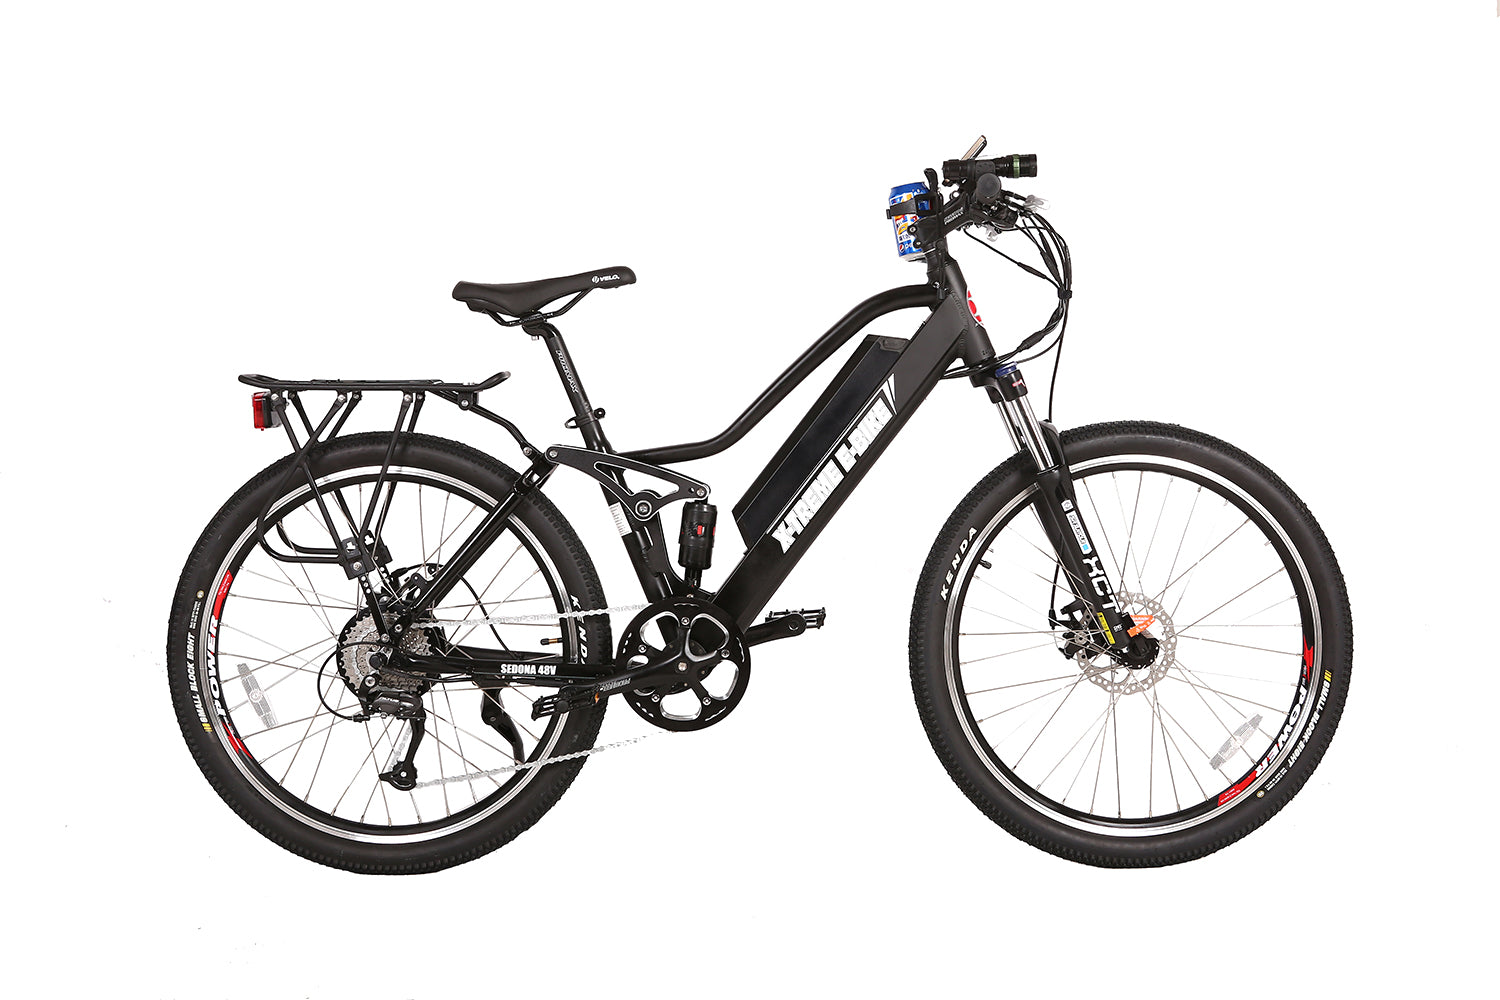 X-Treme Sedona 48 Volt Step-Through Electric Mountain Bicycle Black